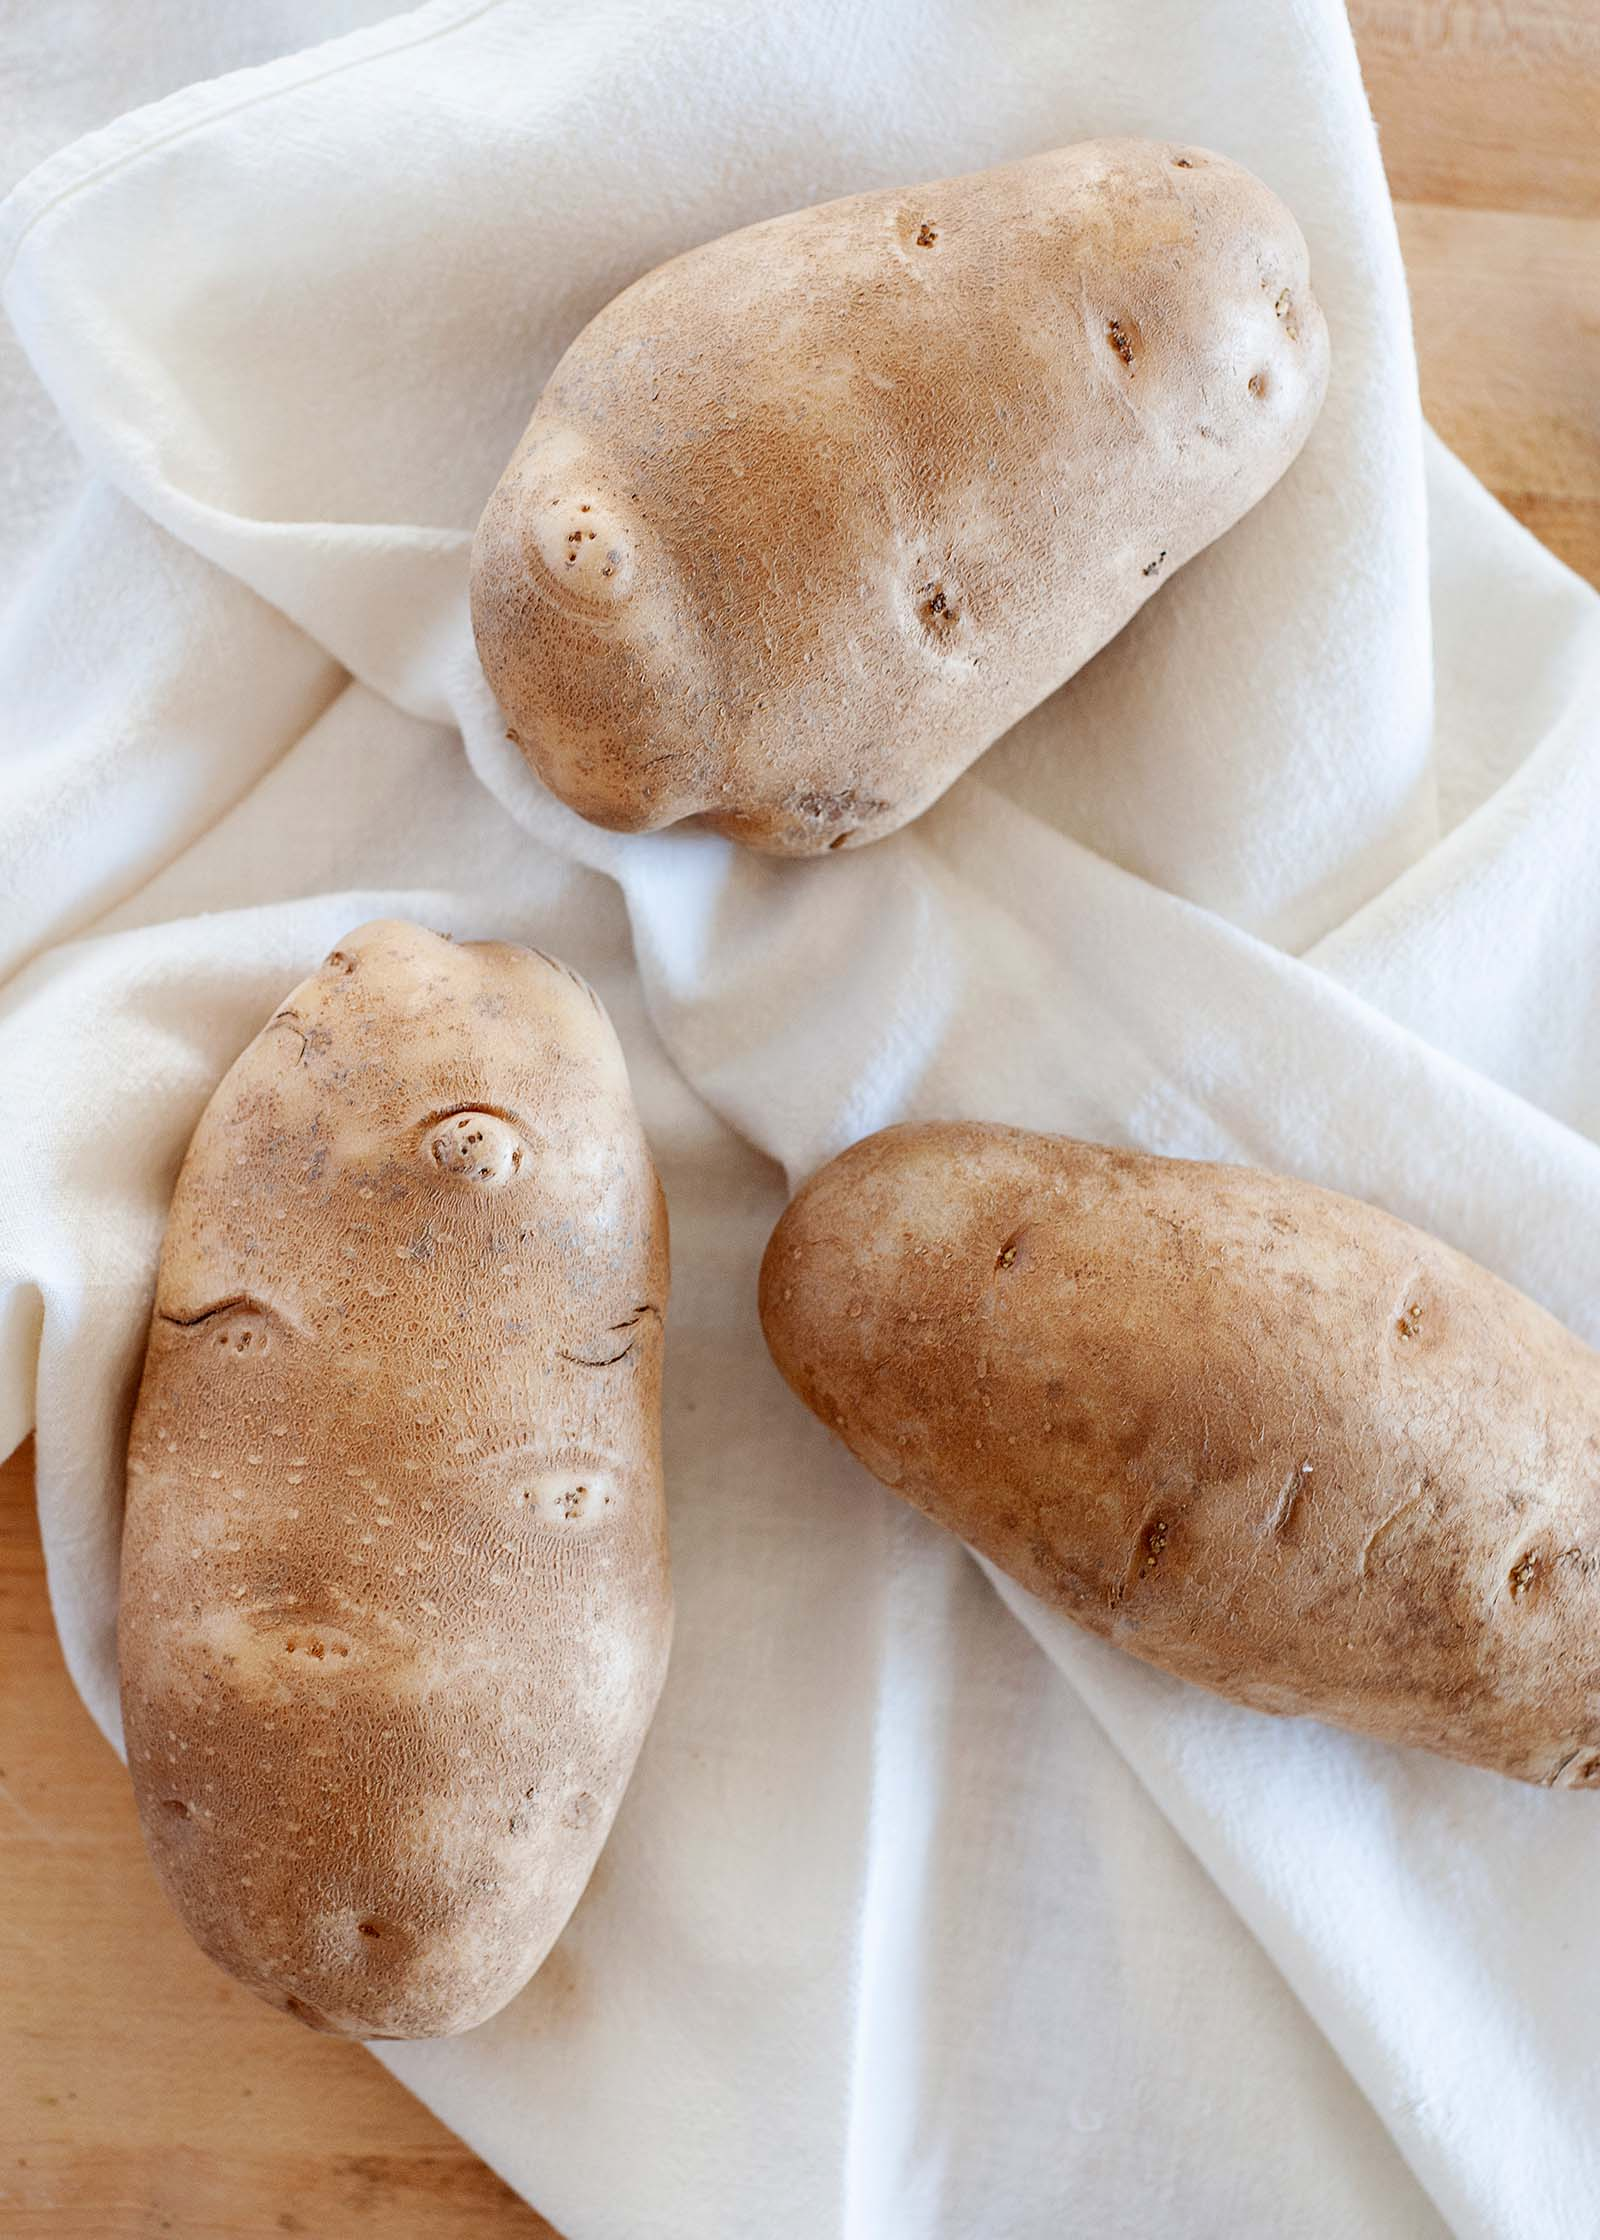 Three russett potatoes on a white linen.